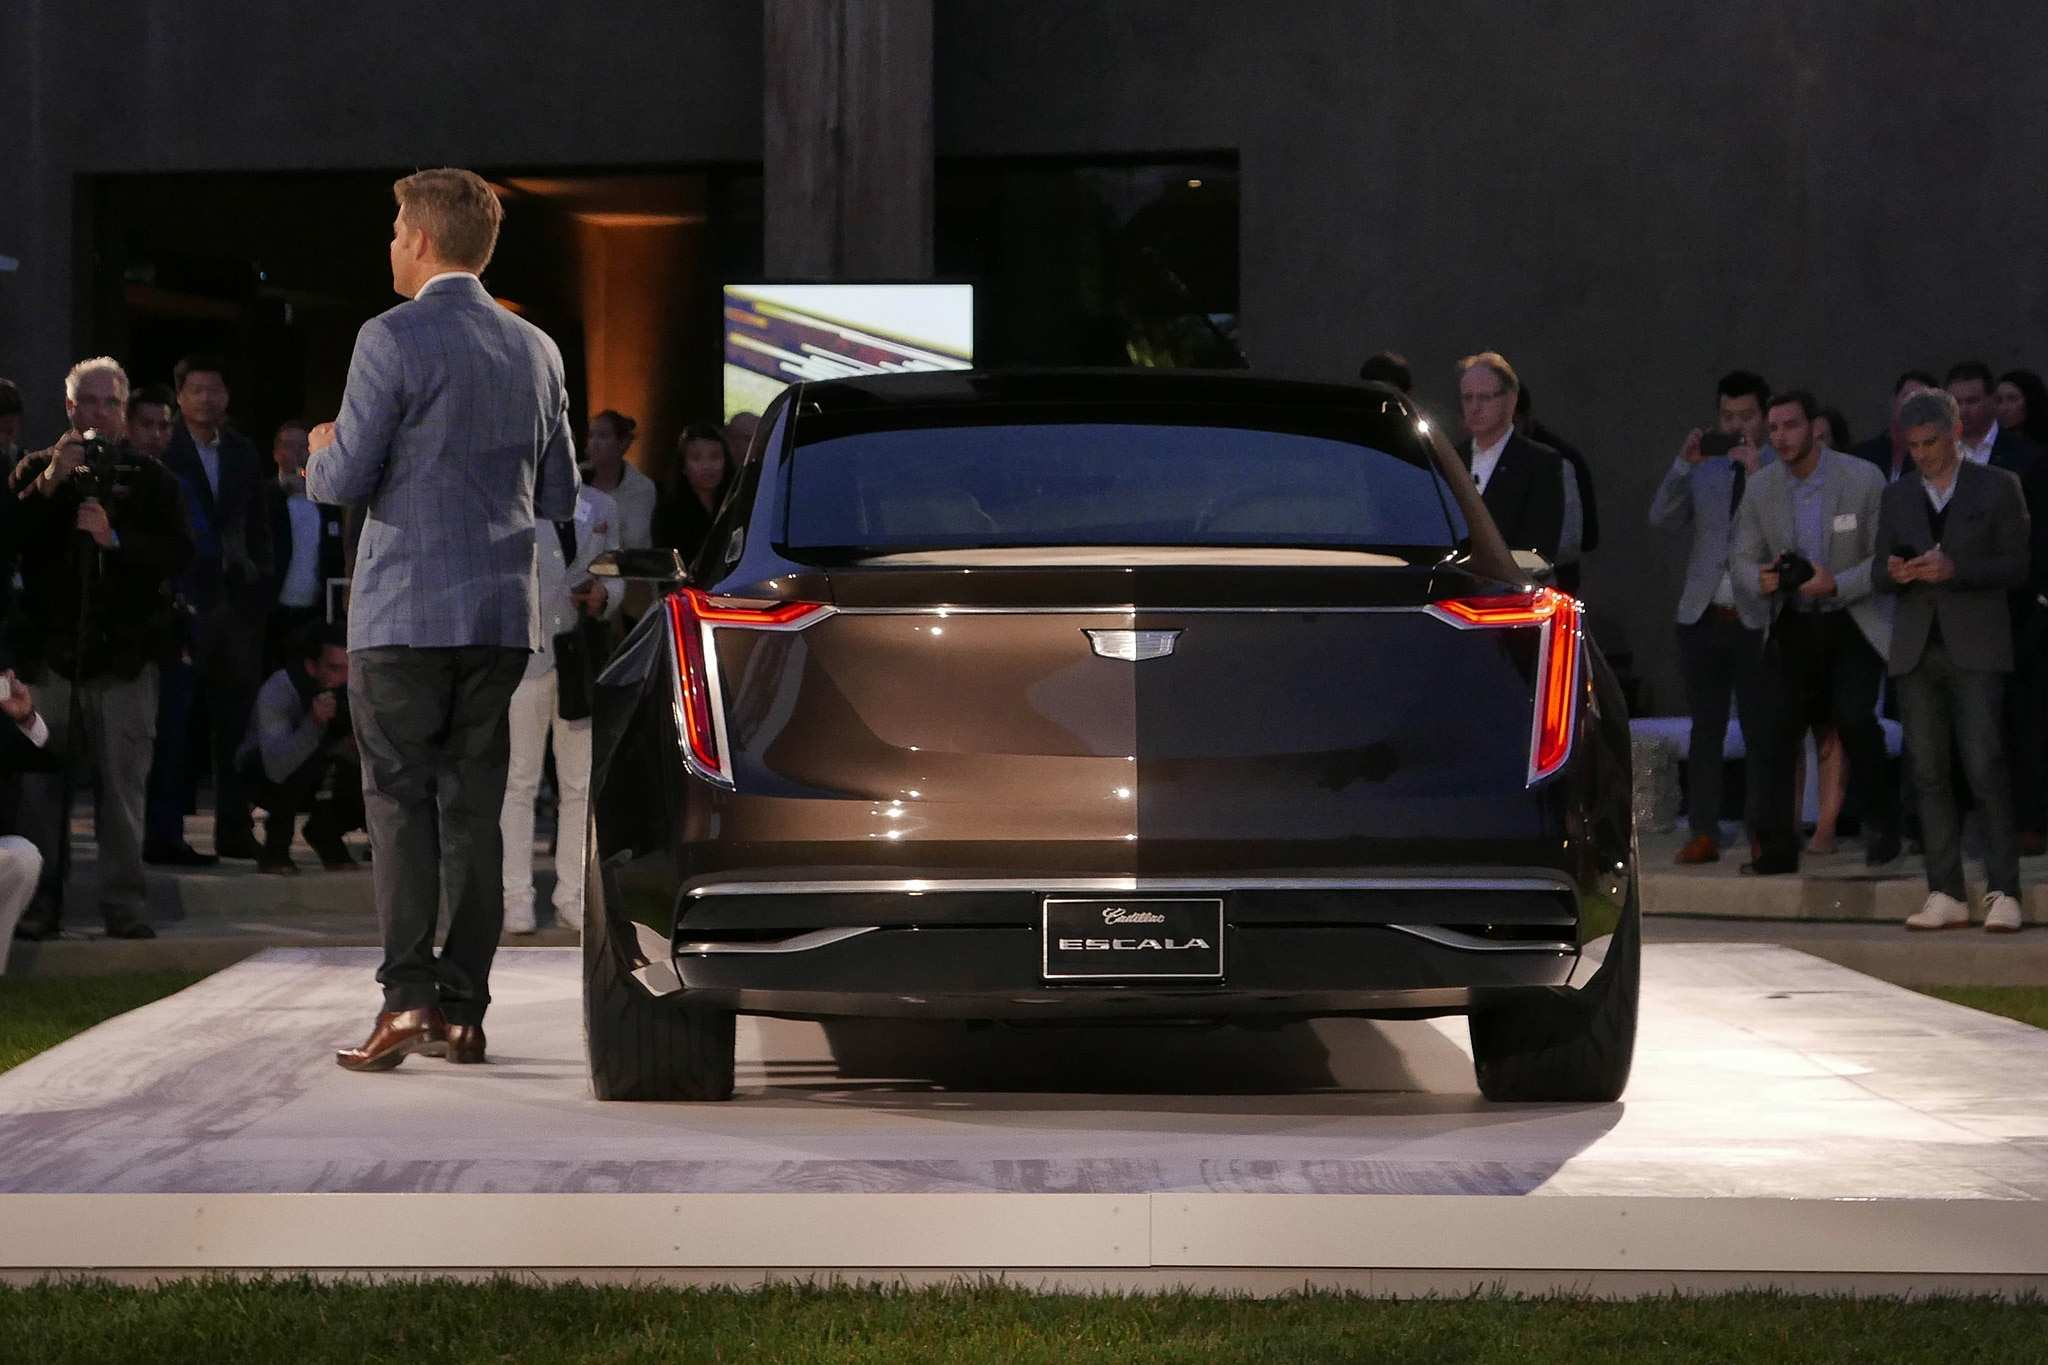 65 Gallery of New 2020 Cadillac Escalade Rumors for New 2020 Cadillac Escalade